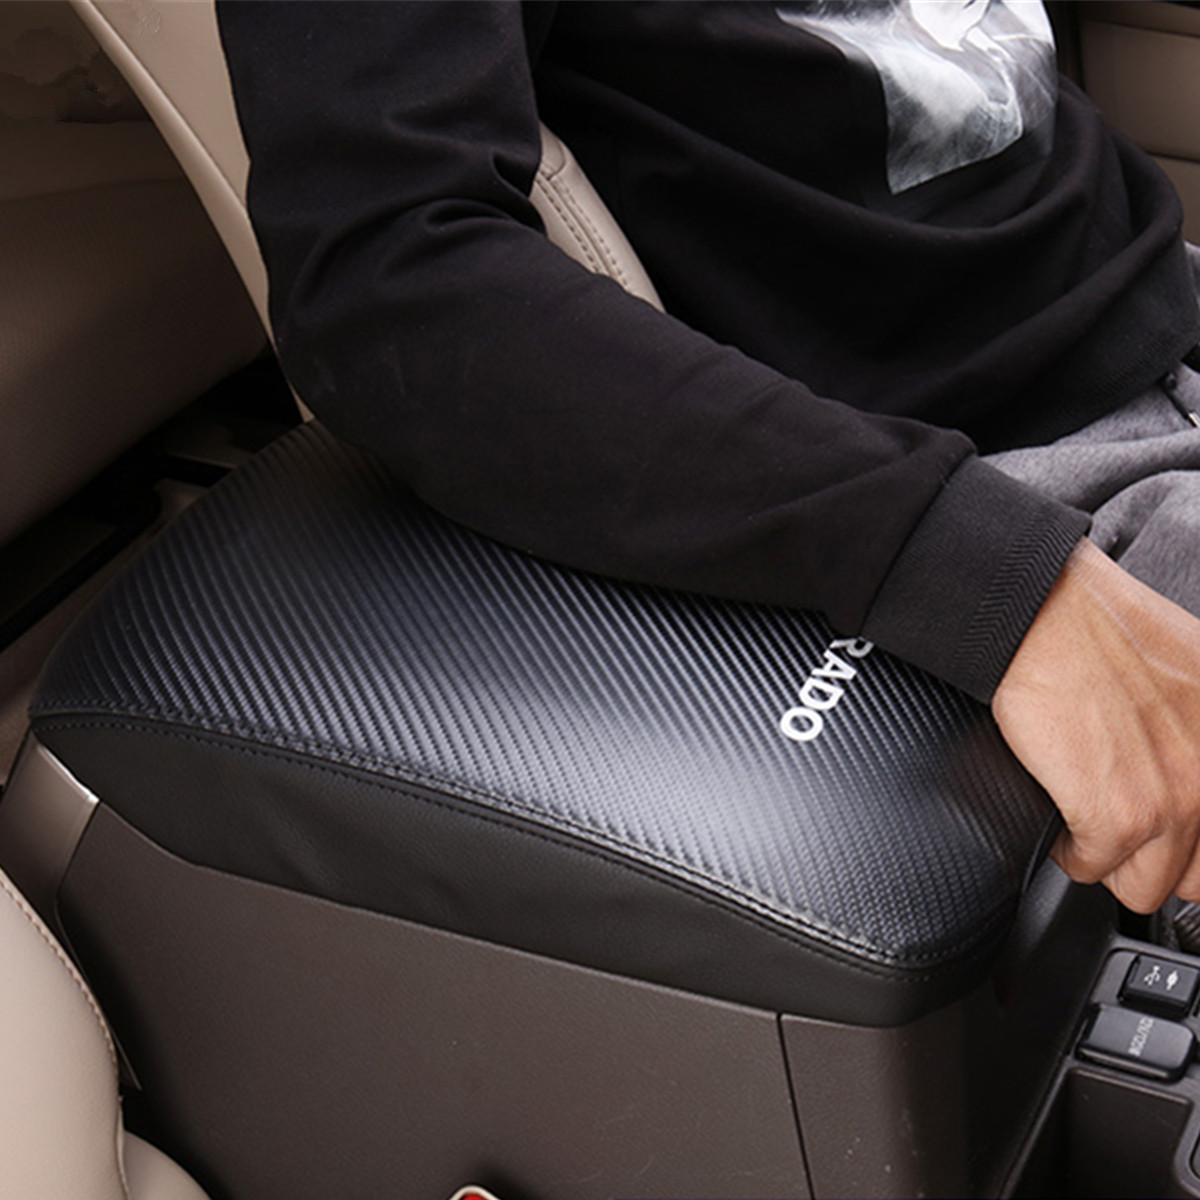 Carbon Fiber Protective Cover for Handrail Case for <font><b>Toyota</b></font> <font><b>Land</b></font> <font><b>Cruiser</b></font> <font><b>Prado</b></font> <font><b>120</b></font> <font><b>2003</b></font> 2004 2005 2006 2007 2008 <font><b>2009</b></font> Year image